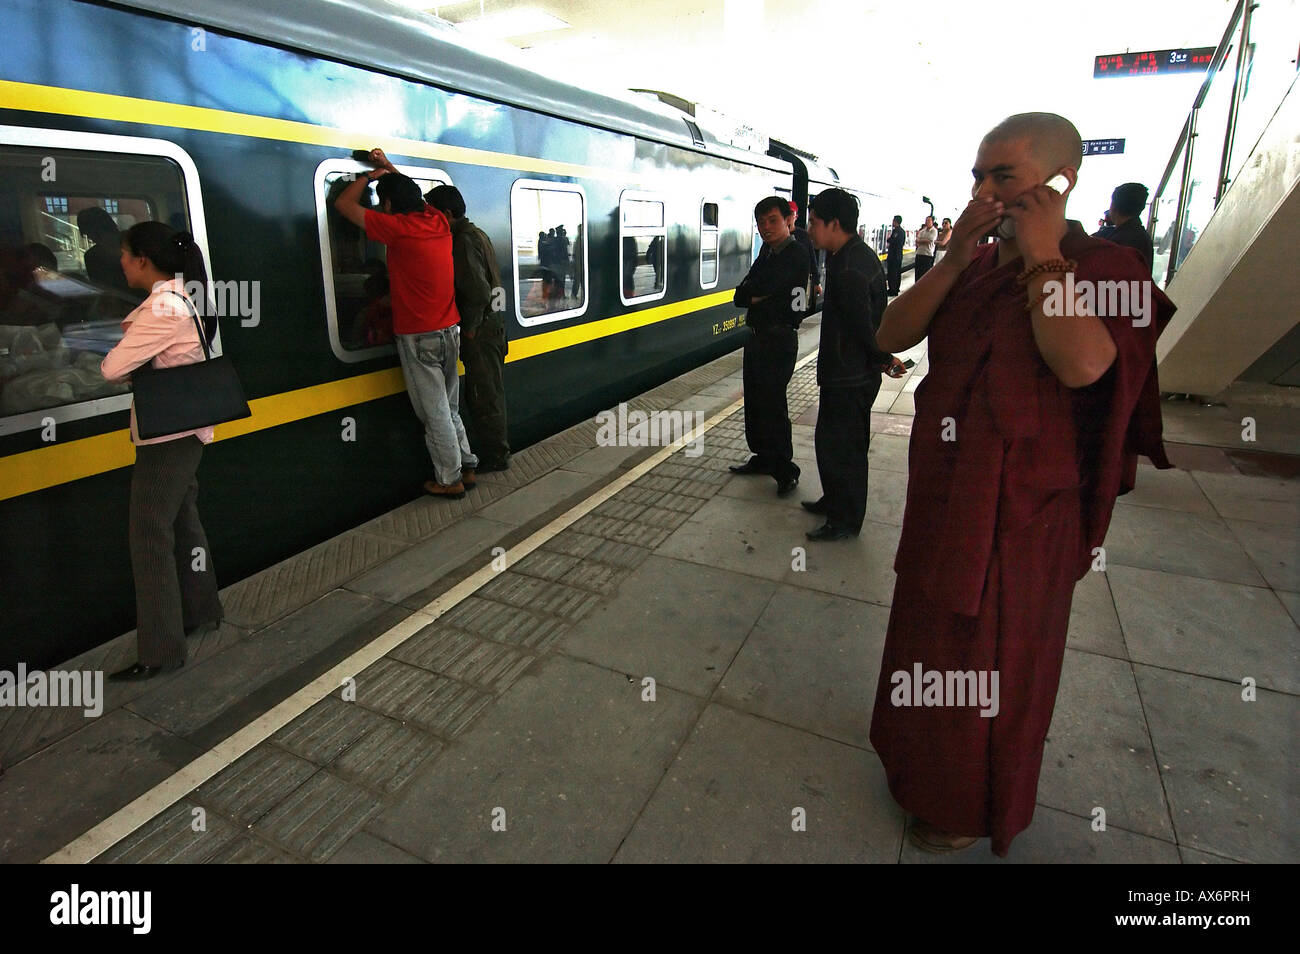 A monk speaks on a mobile phone as he waits to board a train departing from Lhasa train station. Tibet train - Stock Image